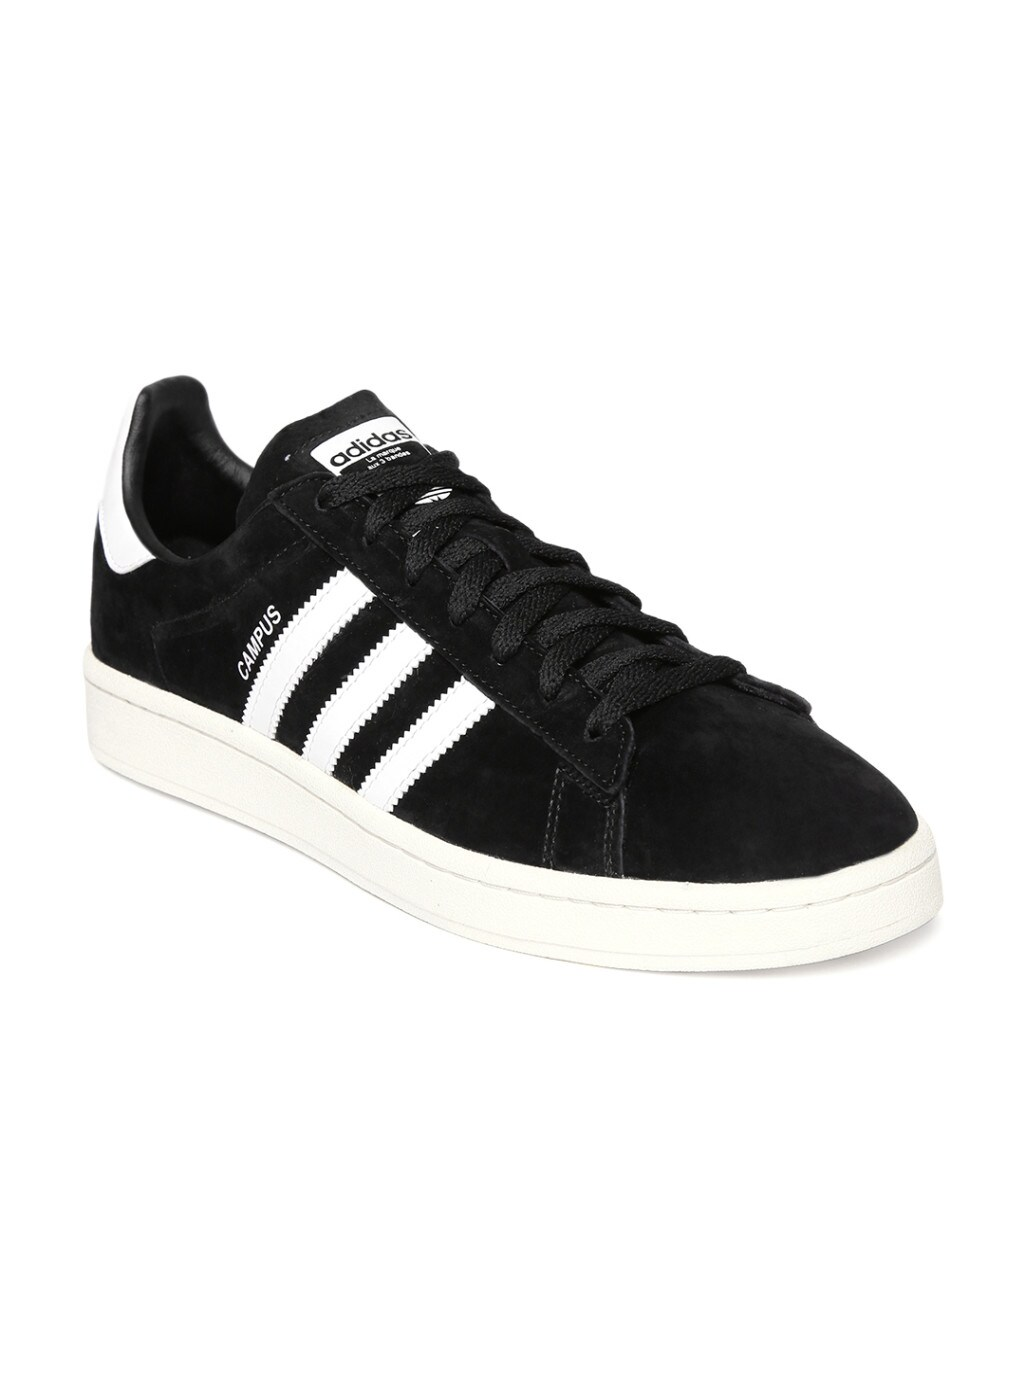 new product 5b738 5e2f2 Adidas Originals - Buy Adidas Originals online in India - Ja